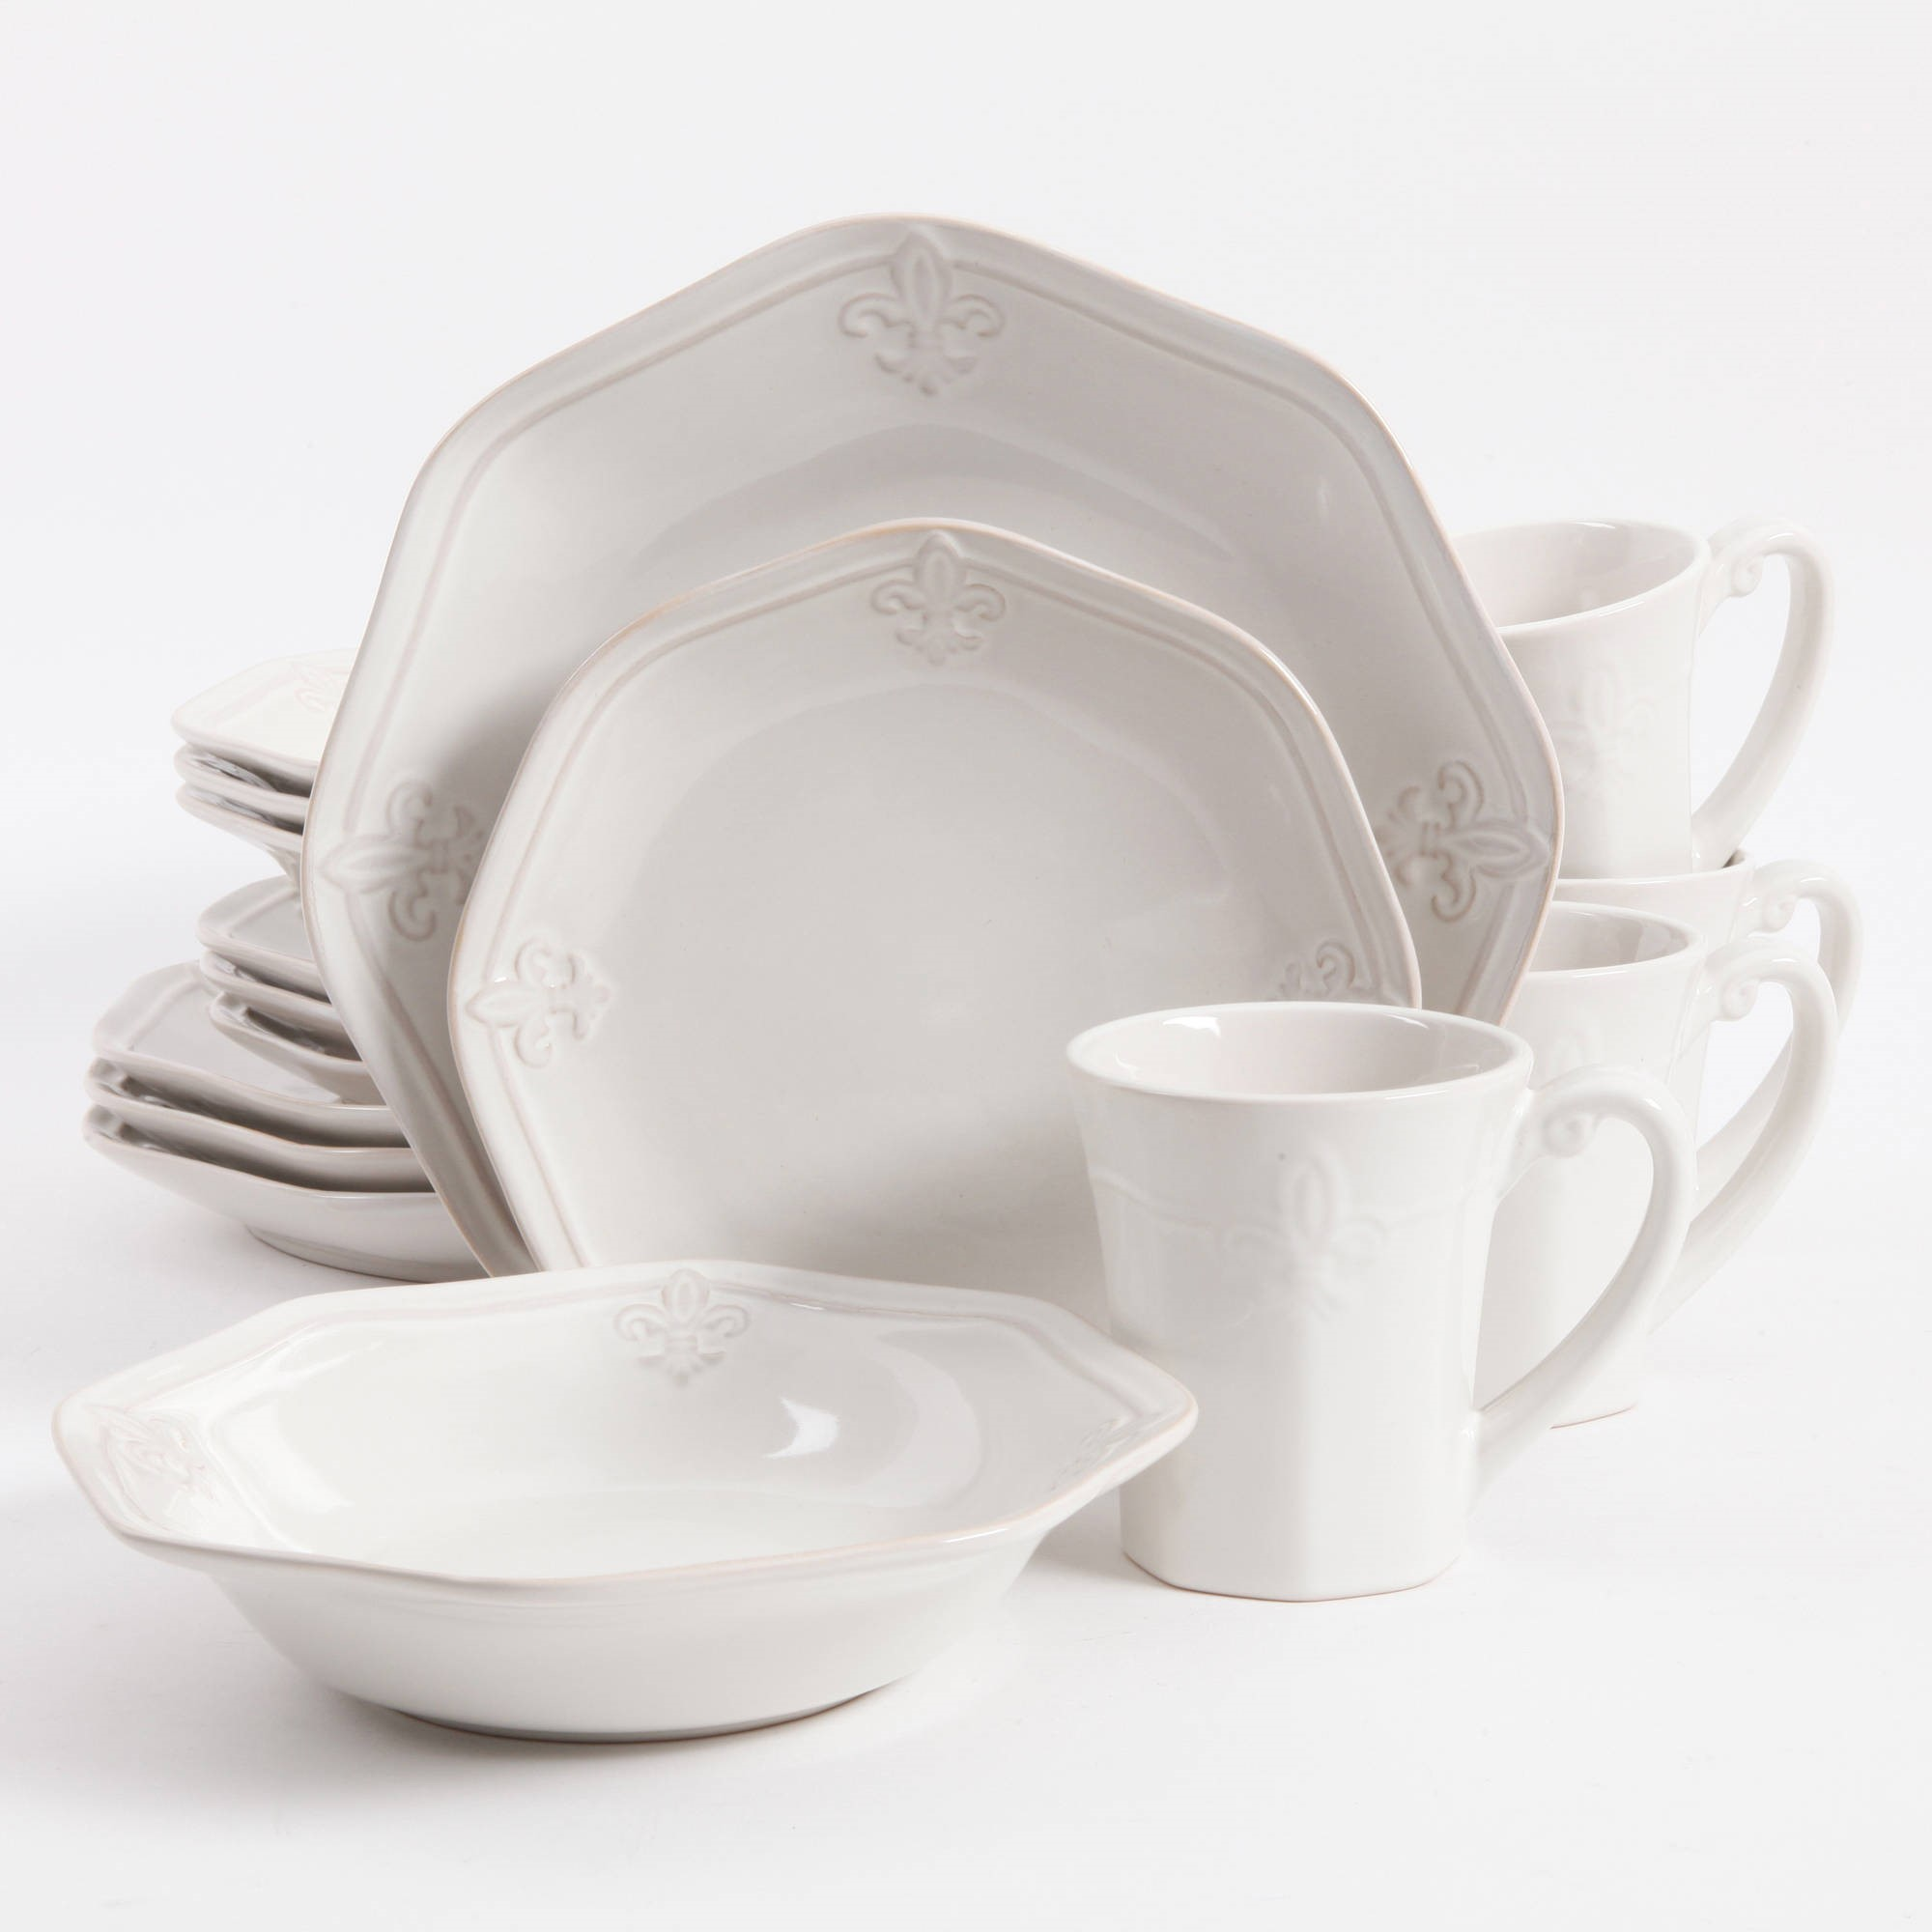 Better Homes & Gardens Country Crest 16-Piece Dinnerware Set by Gibson Overseas, Inc.